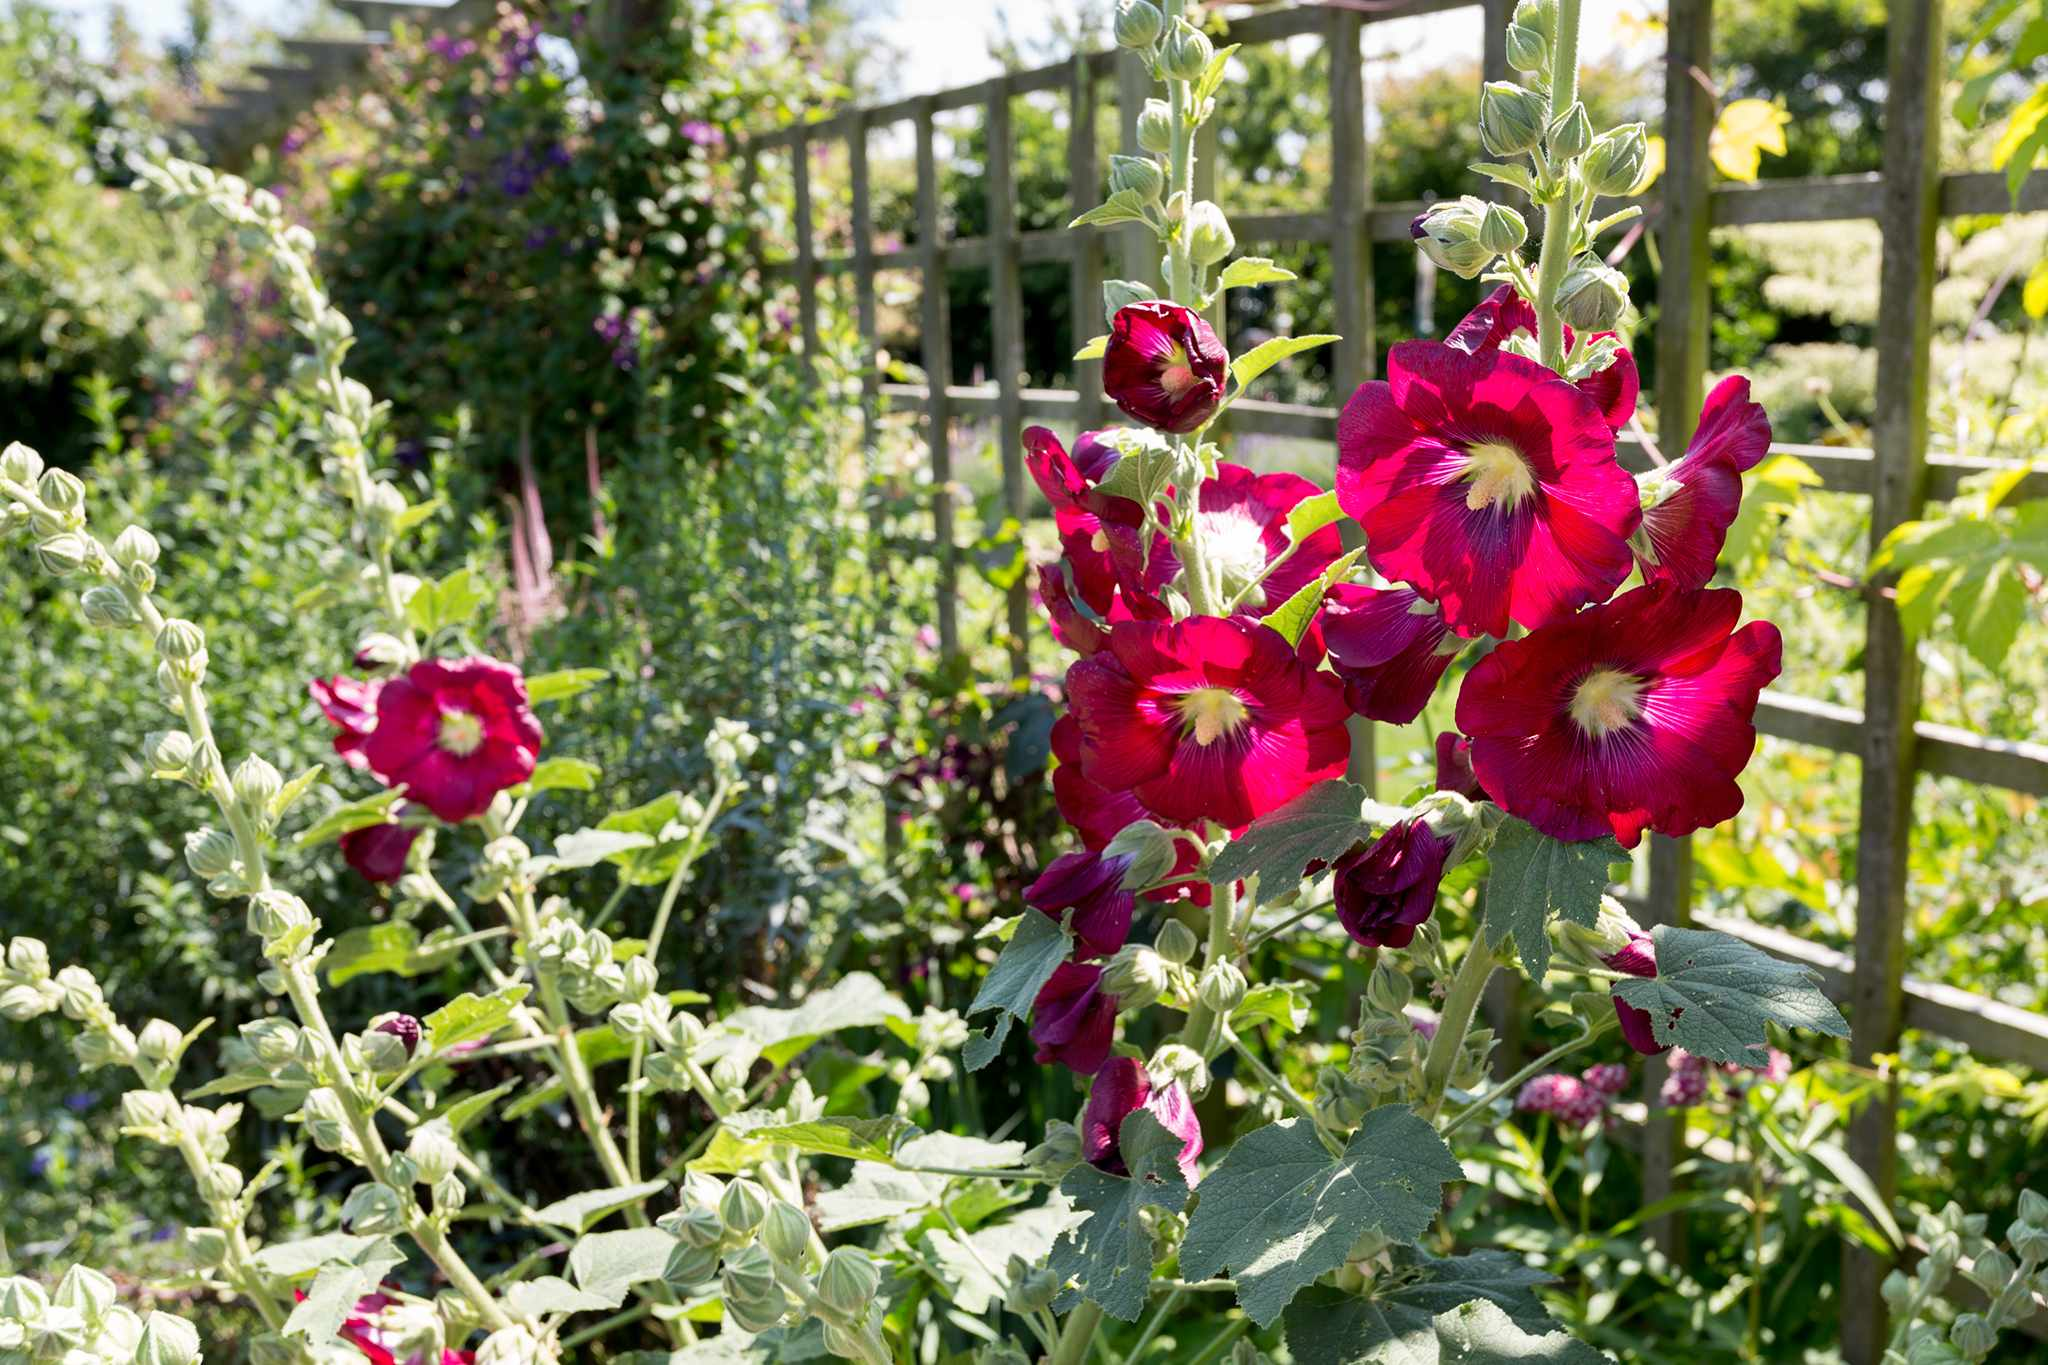 Hollyhocks in border